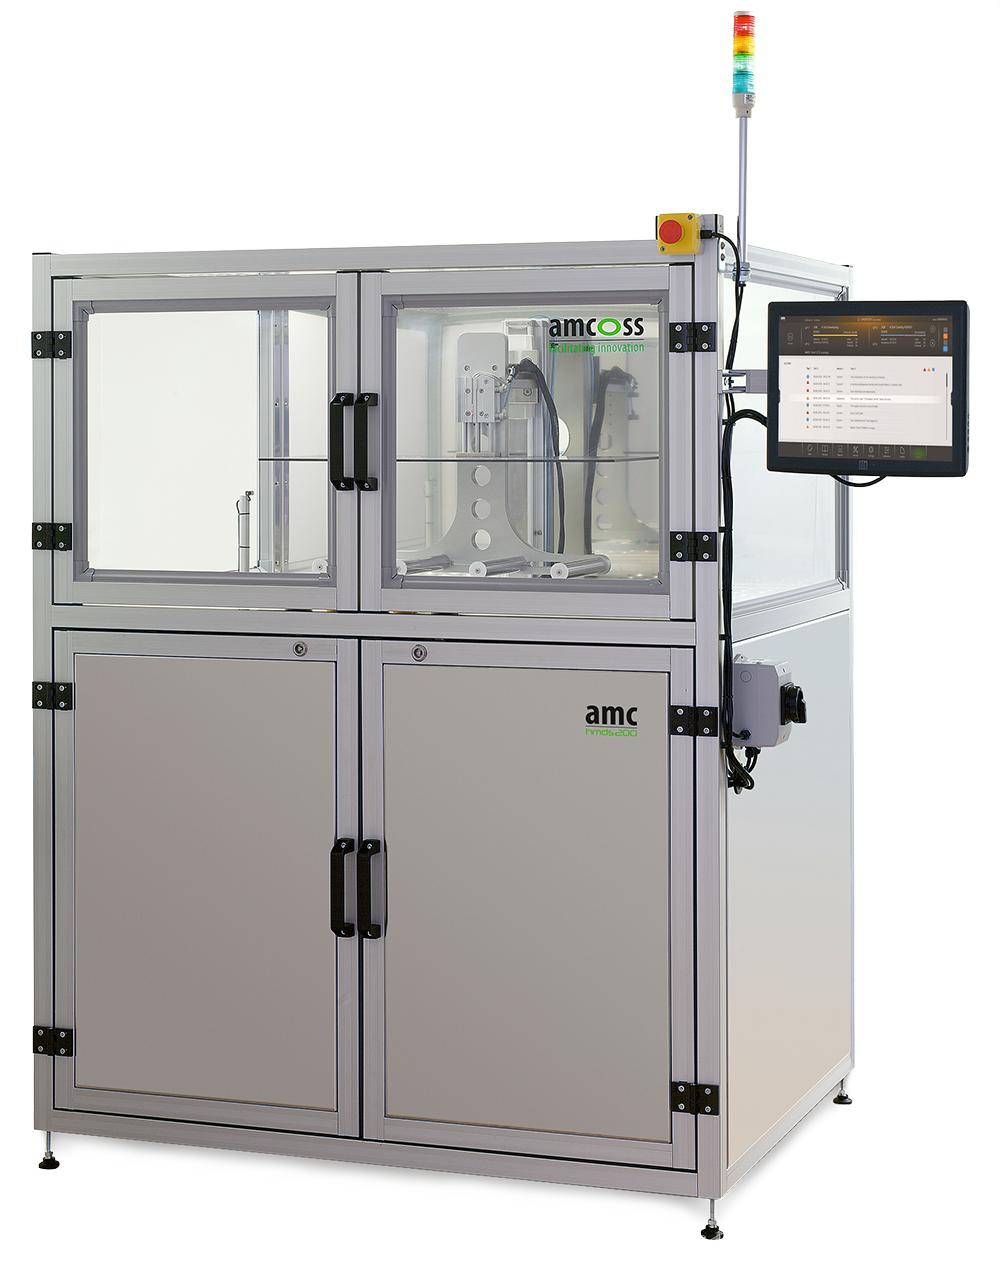 amcoss amv200 batch-wafer processing equipment